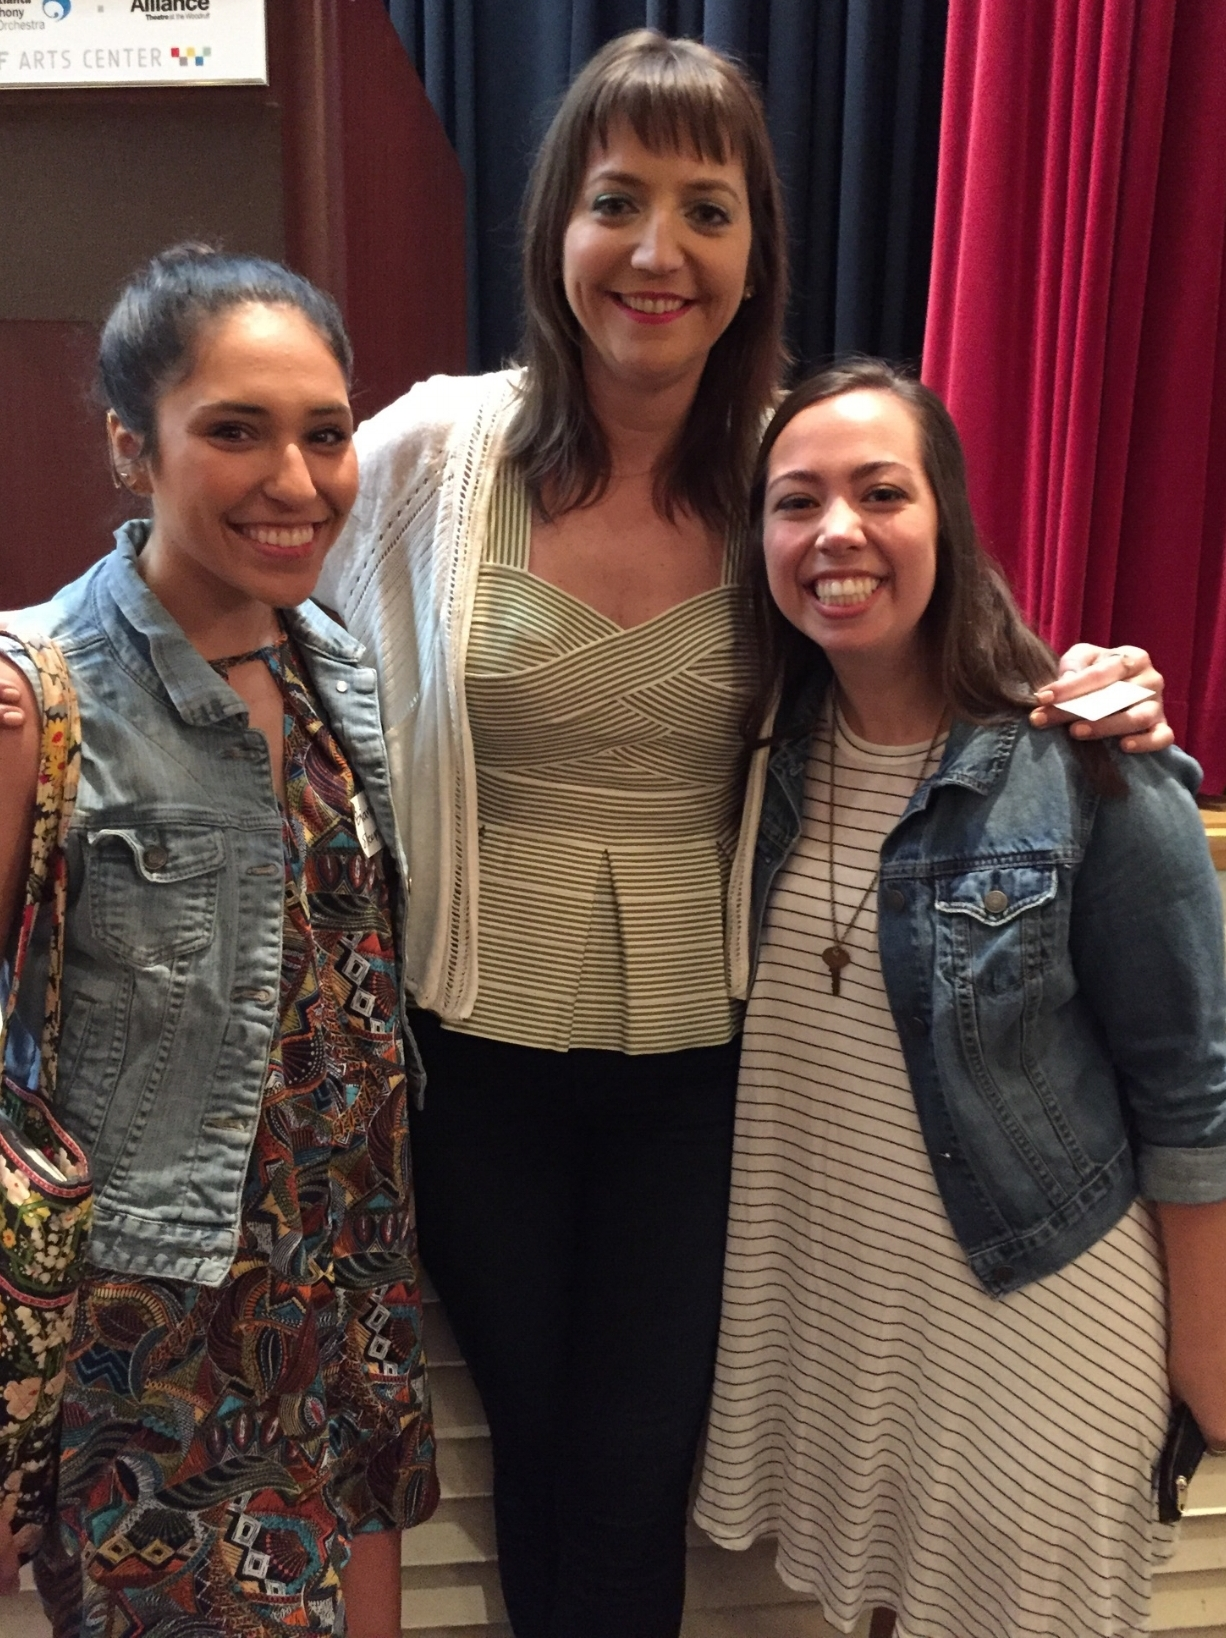 Our intern, Bianca & Community engagement coordinator, Lauren got to meet founder of Kate's Club, Kate Atwood at Creative Mornings in May!